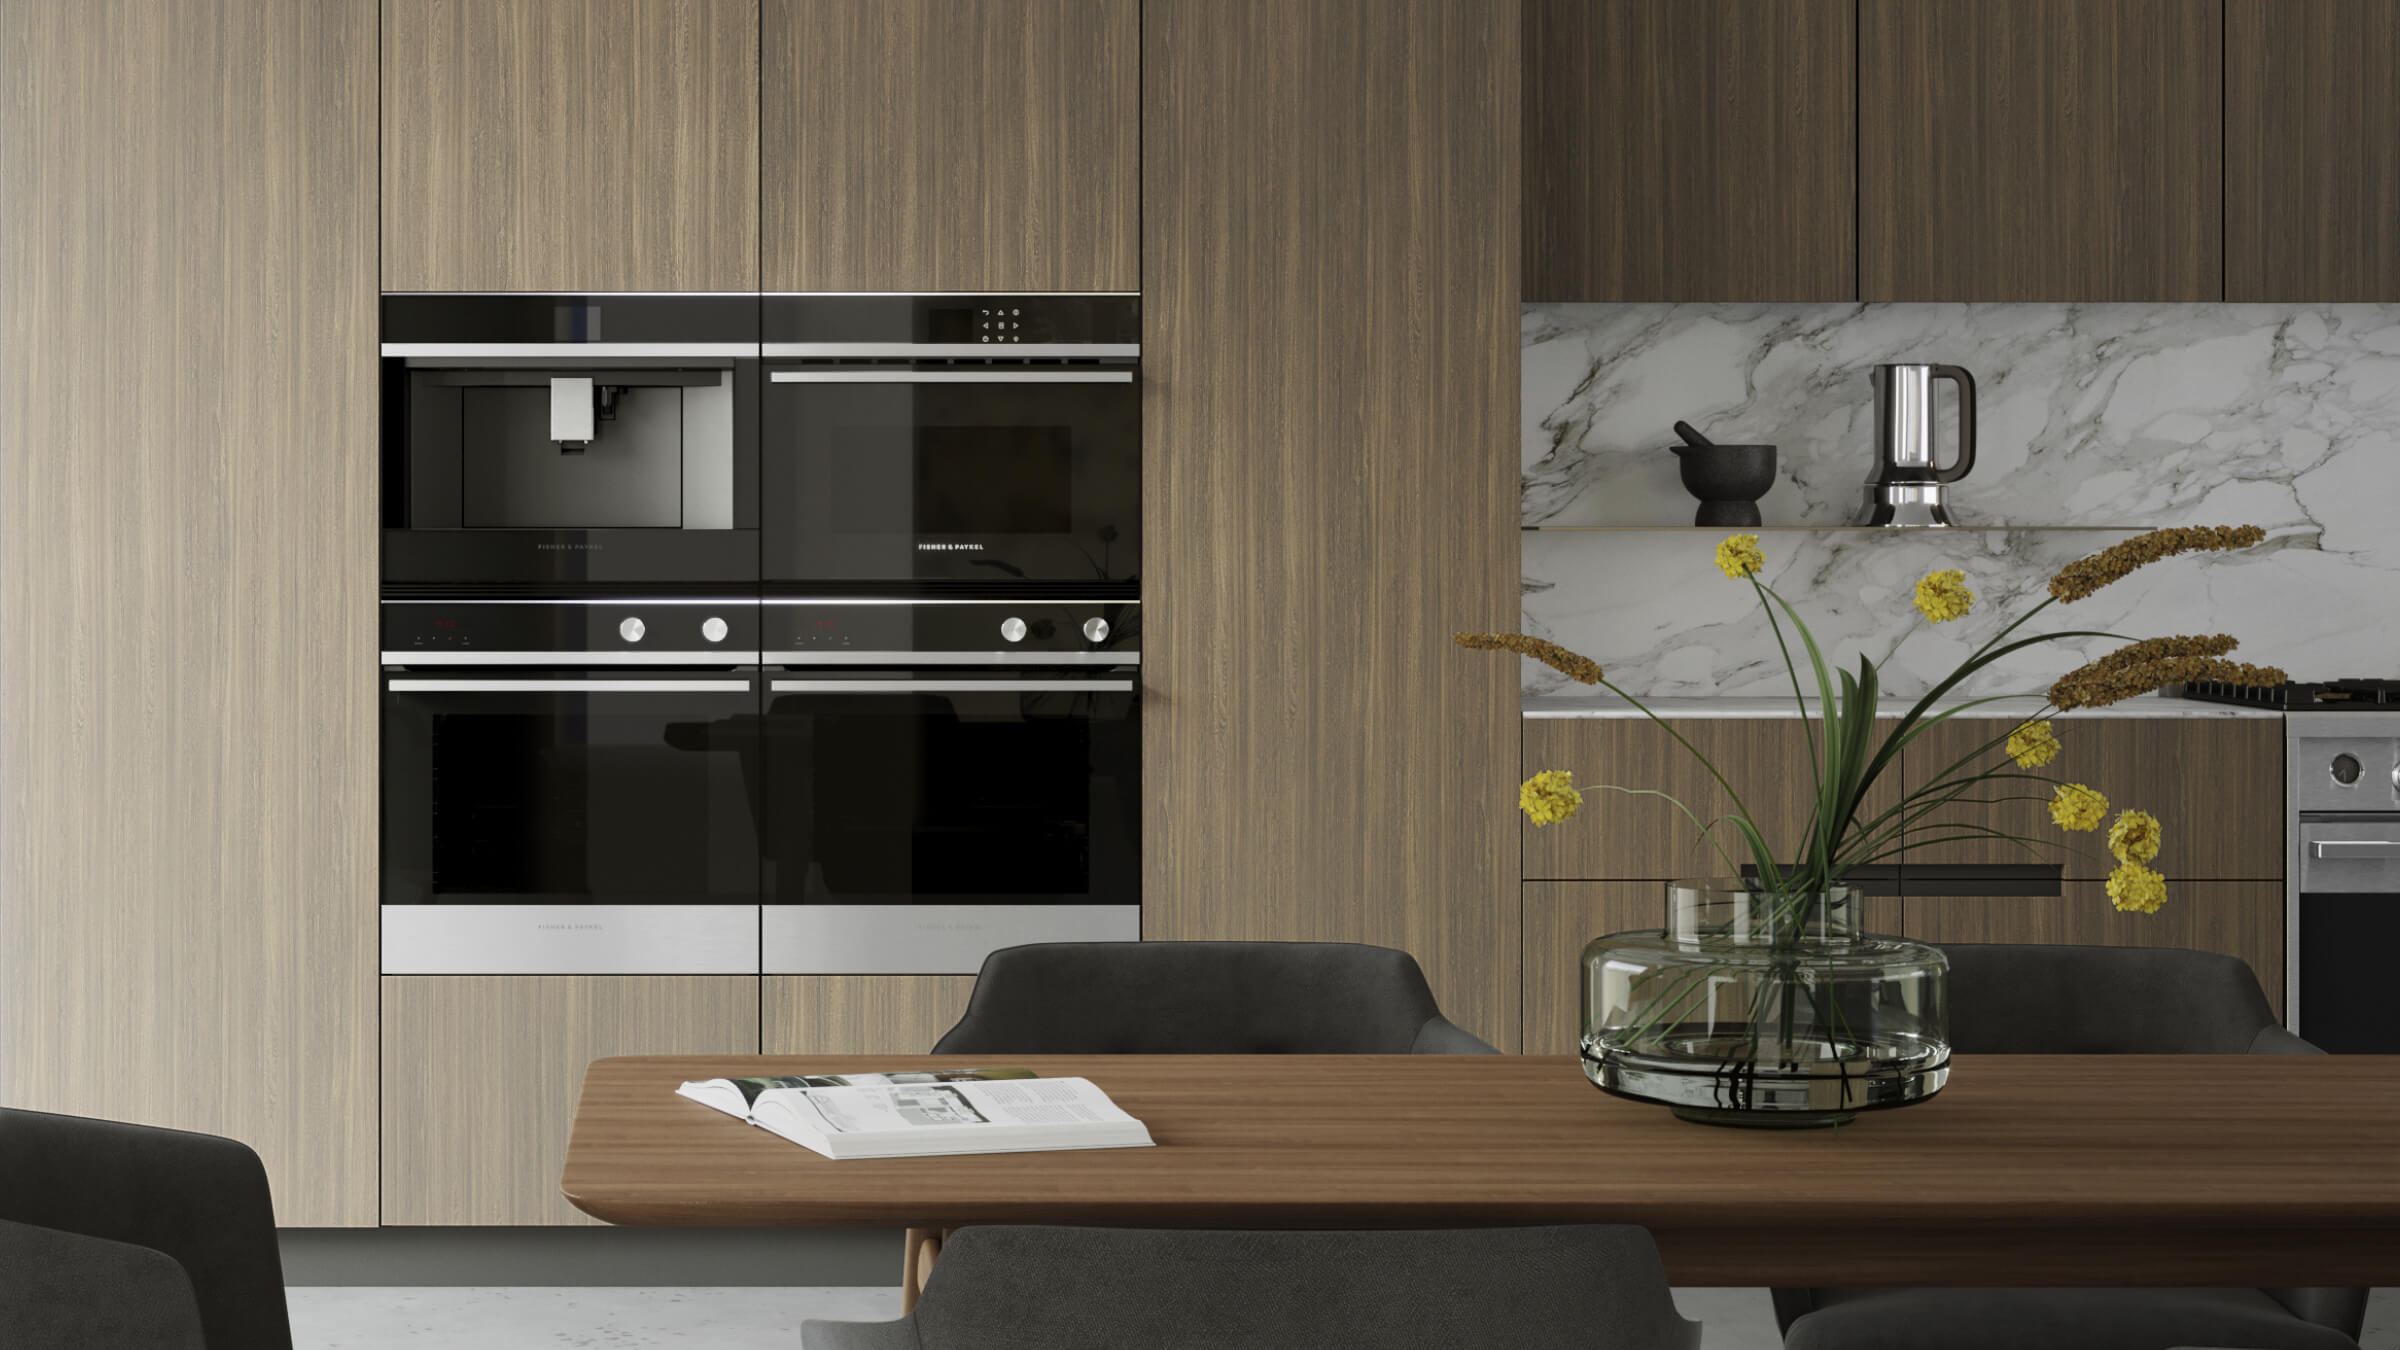 "Model: OB24SCDEPX1 | Fisher and Paykel Built-in Oven, 24"", 3 cu ft, 11 Function, Self-cleaning"